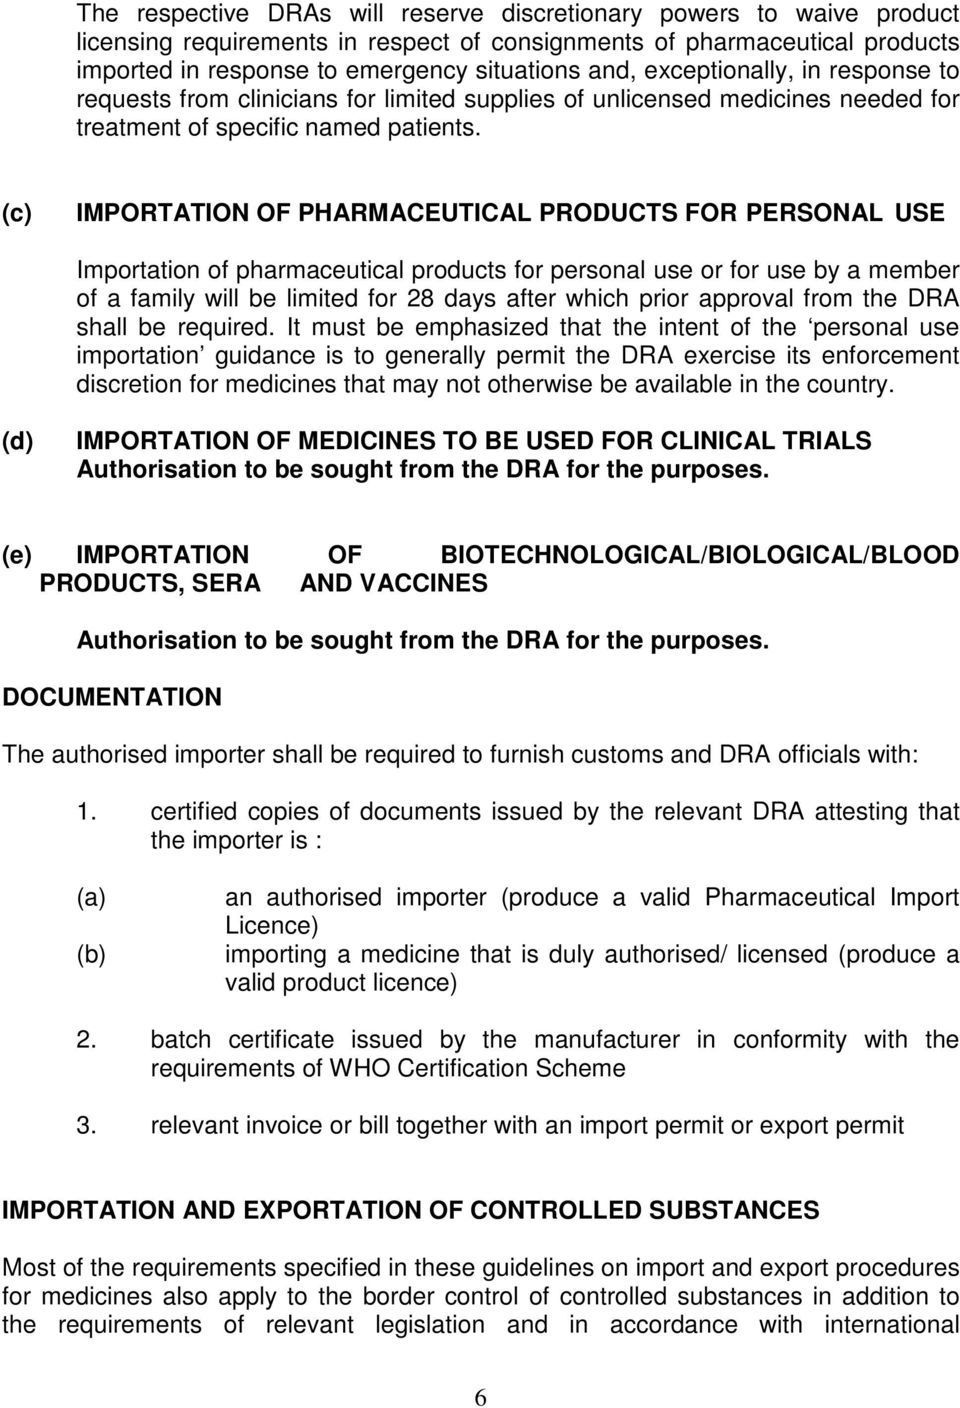 (c) IMPORTATION OF PHARMACEUTICAL PRODUCTS FOR PERSONAL USE Importation of pharmaceutical products for personal use or for use by a member of a family will be limited for 28 days after which prior